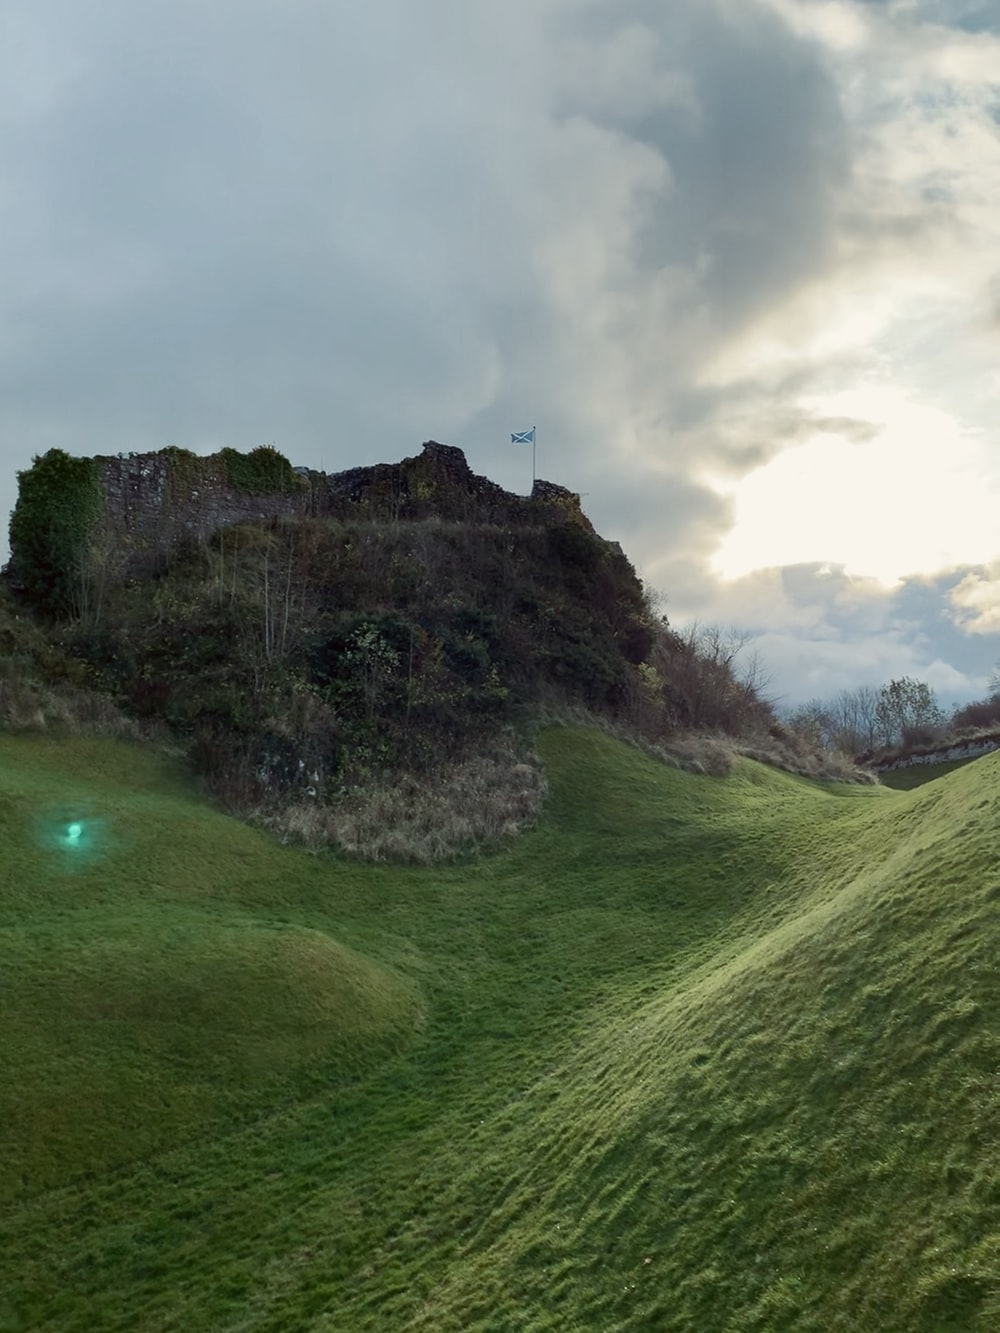 green grass field near gray rock formation under gray sky during daytime